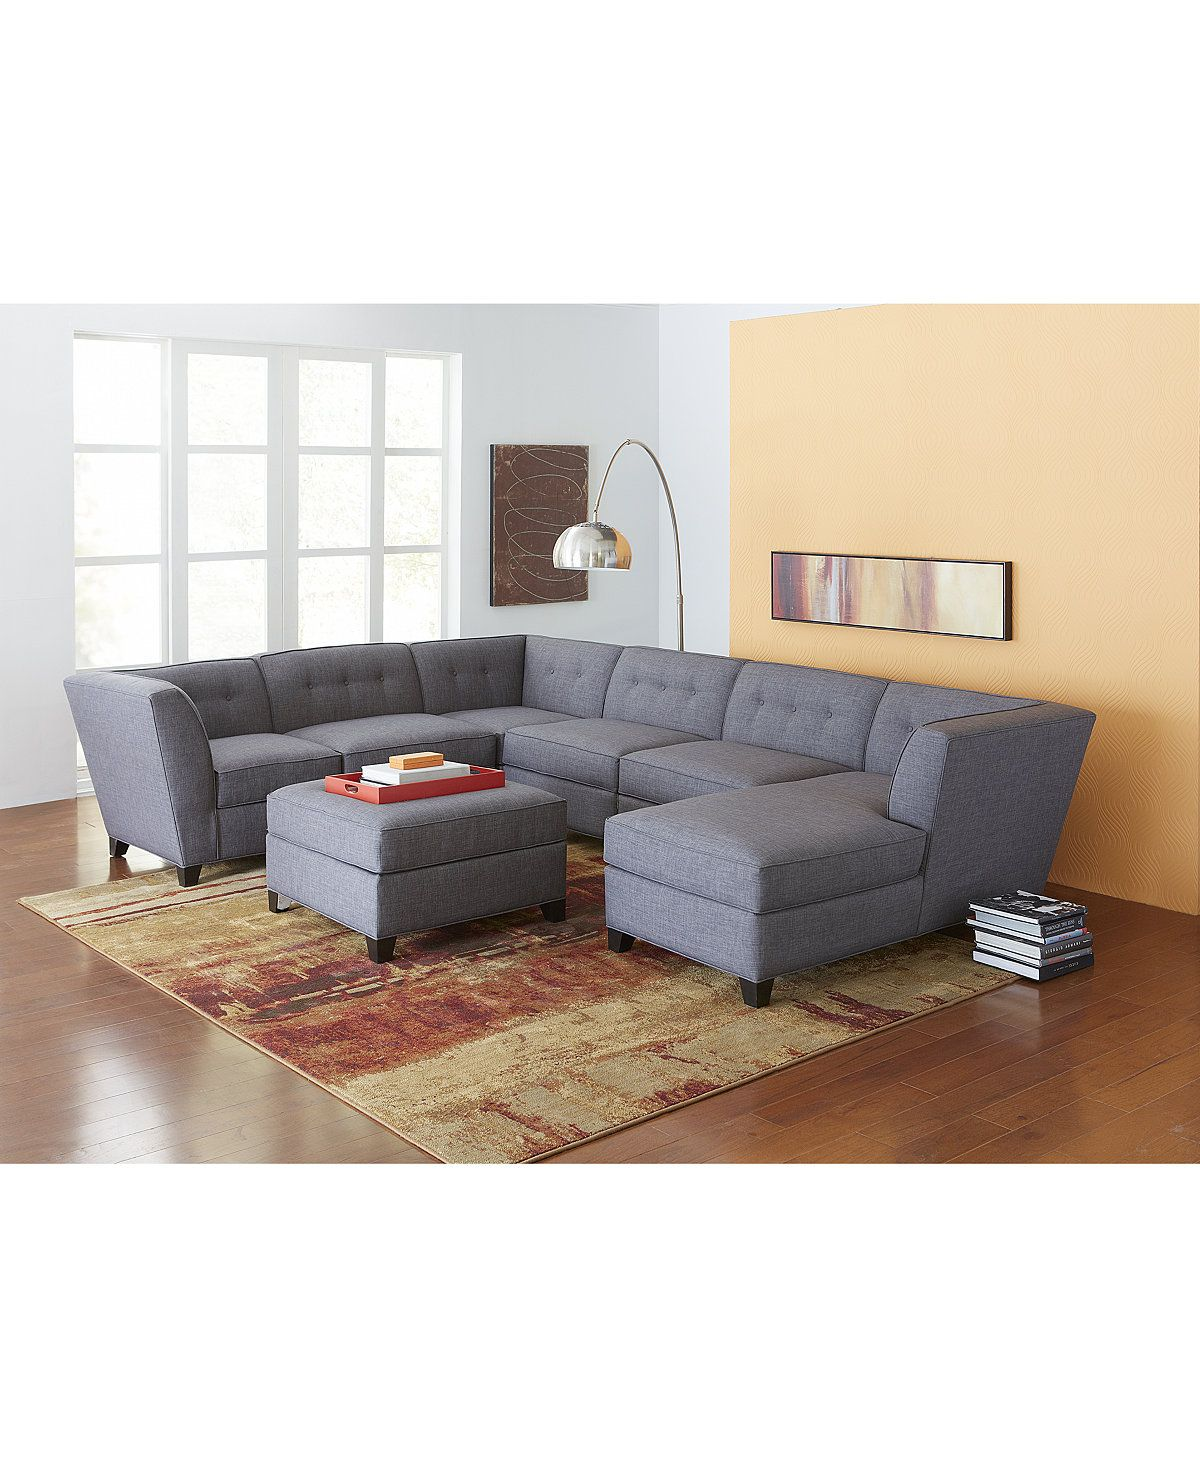 Best Harper Fabric 6 Piece Modular Sectional Sofa With Chaise 400 x 300